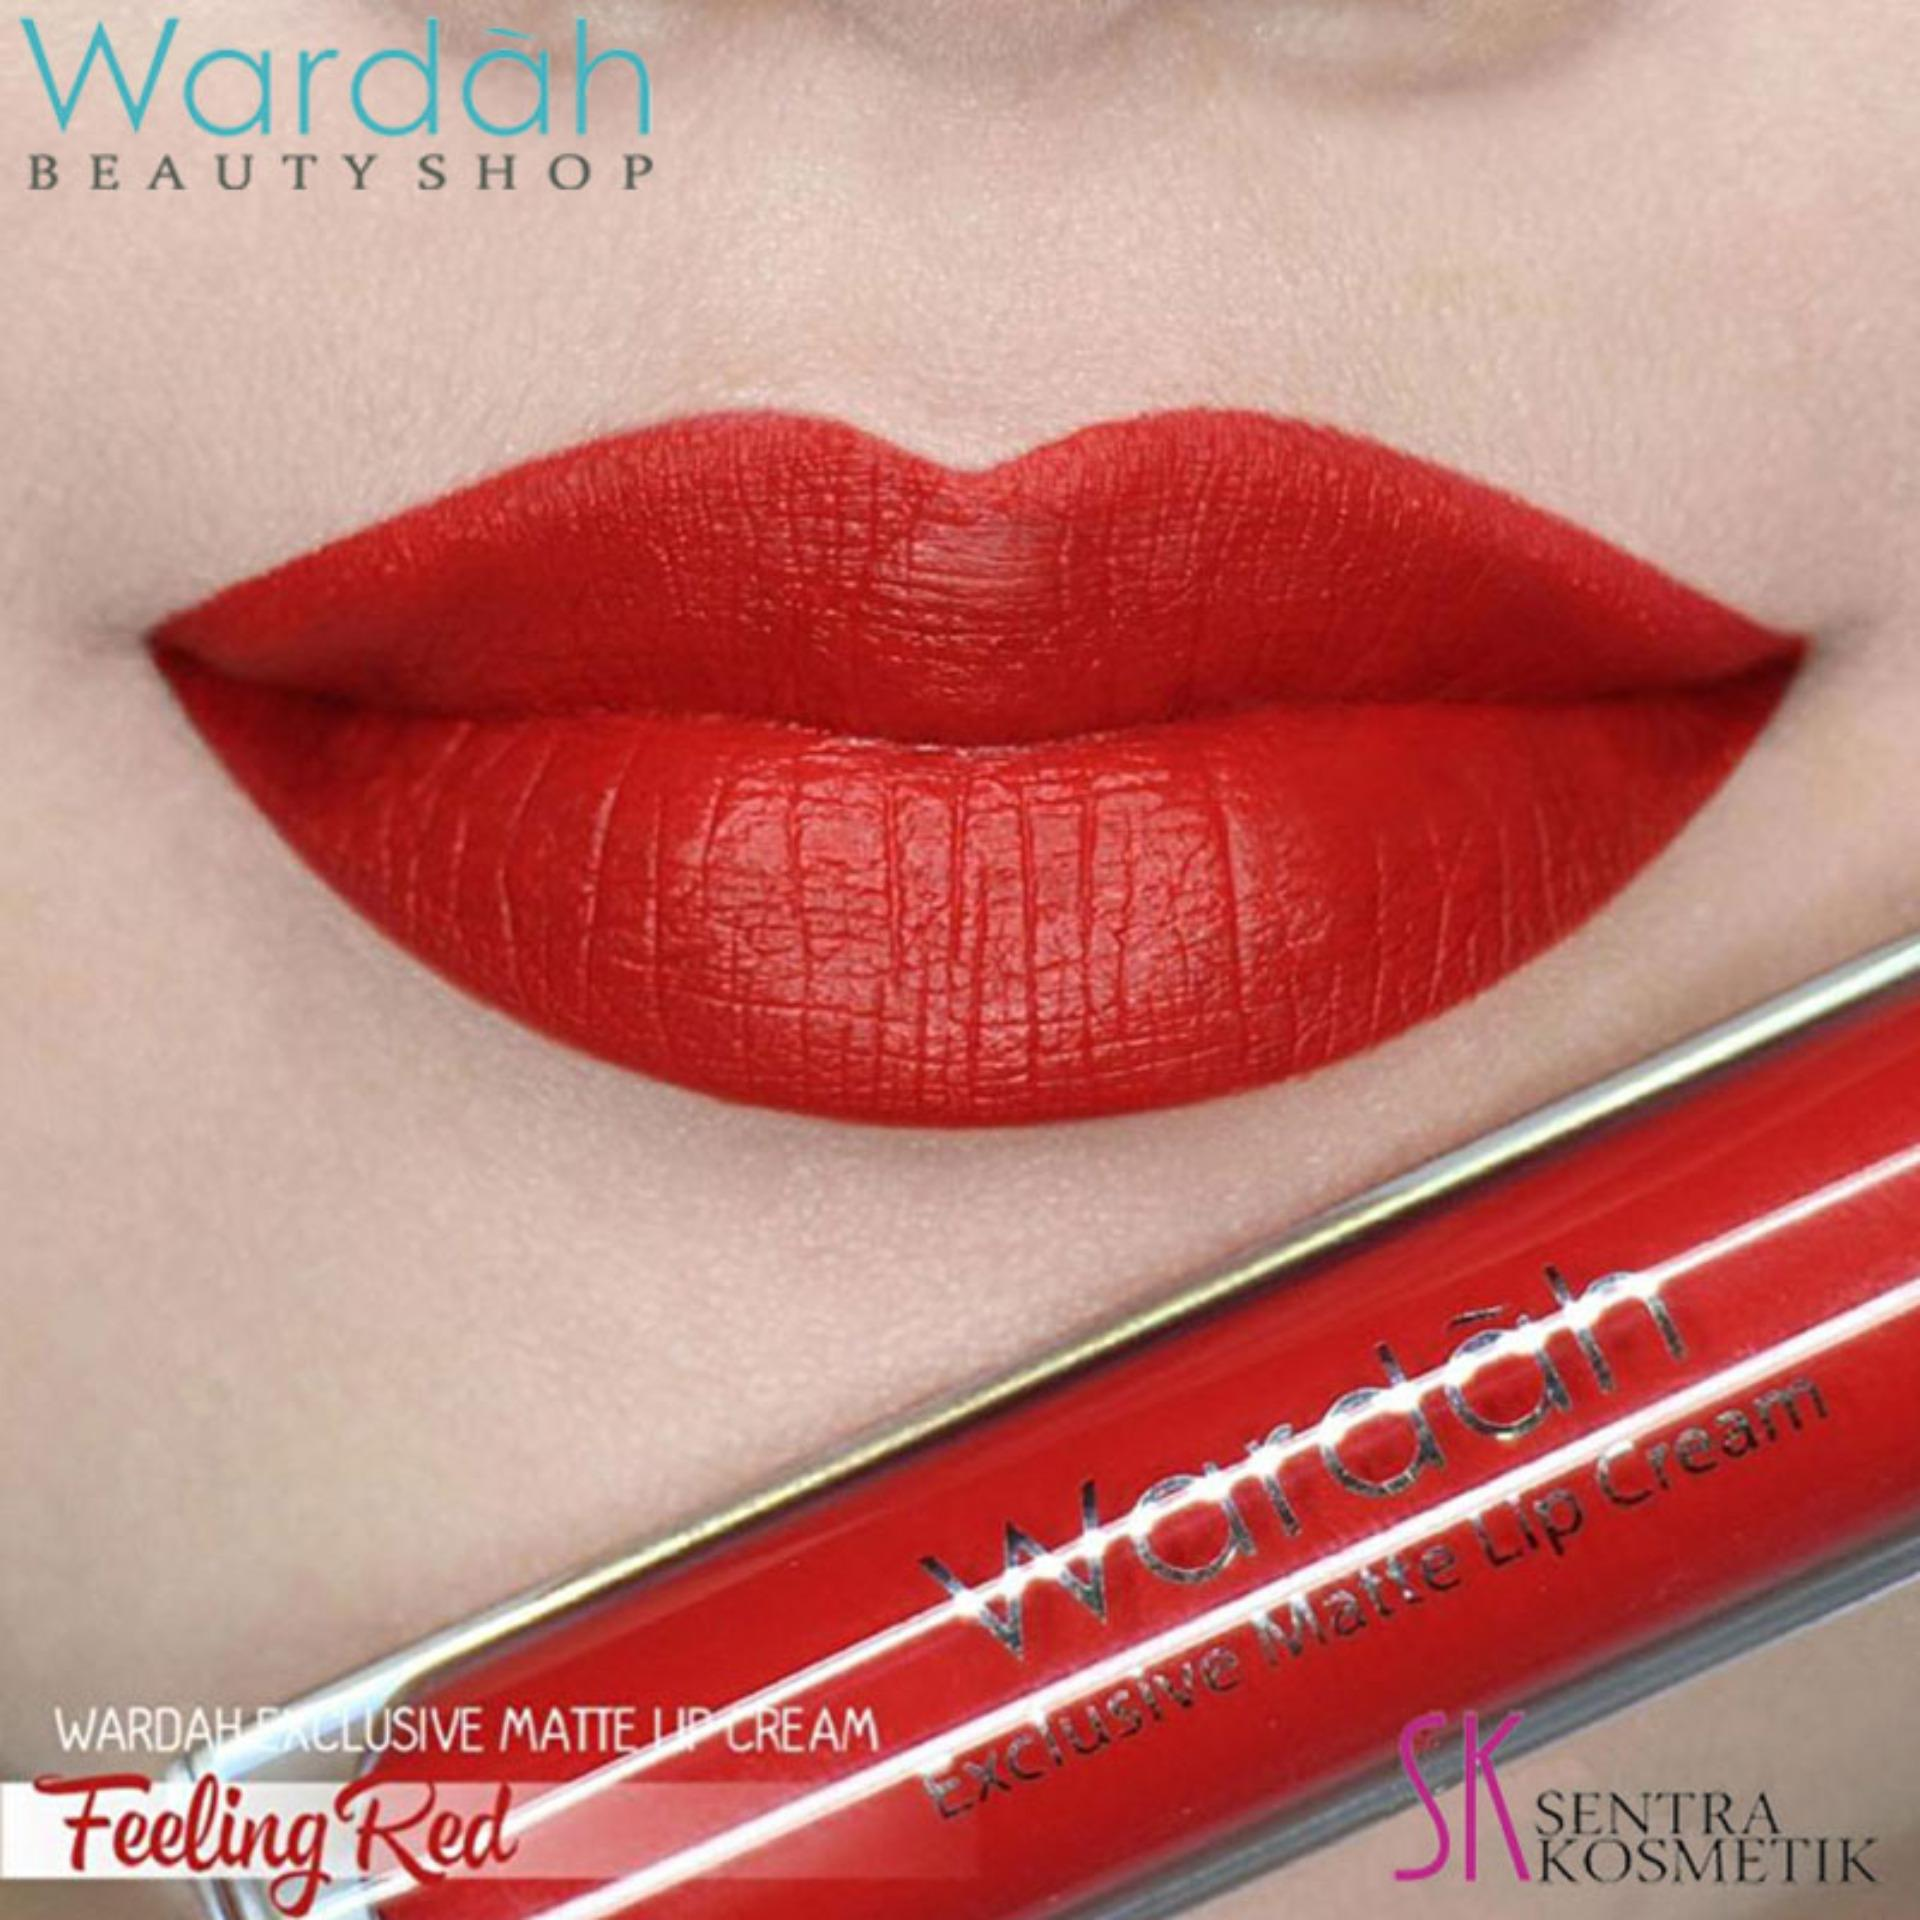 Wardah Exclusive MATTE LIP CREAM No 06 - FEELING RED